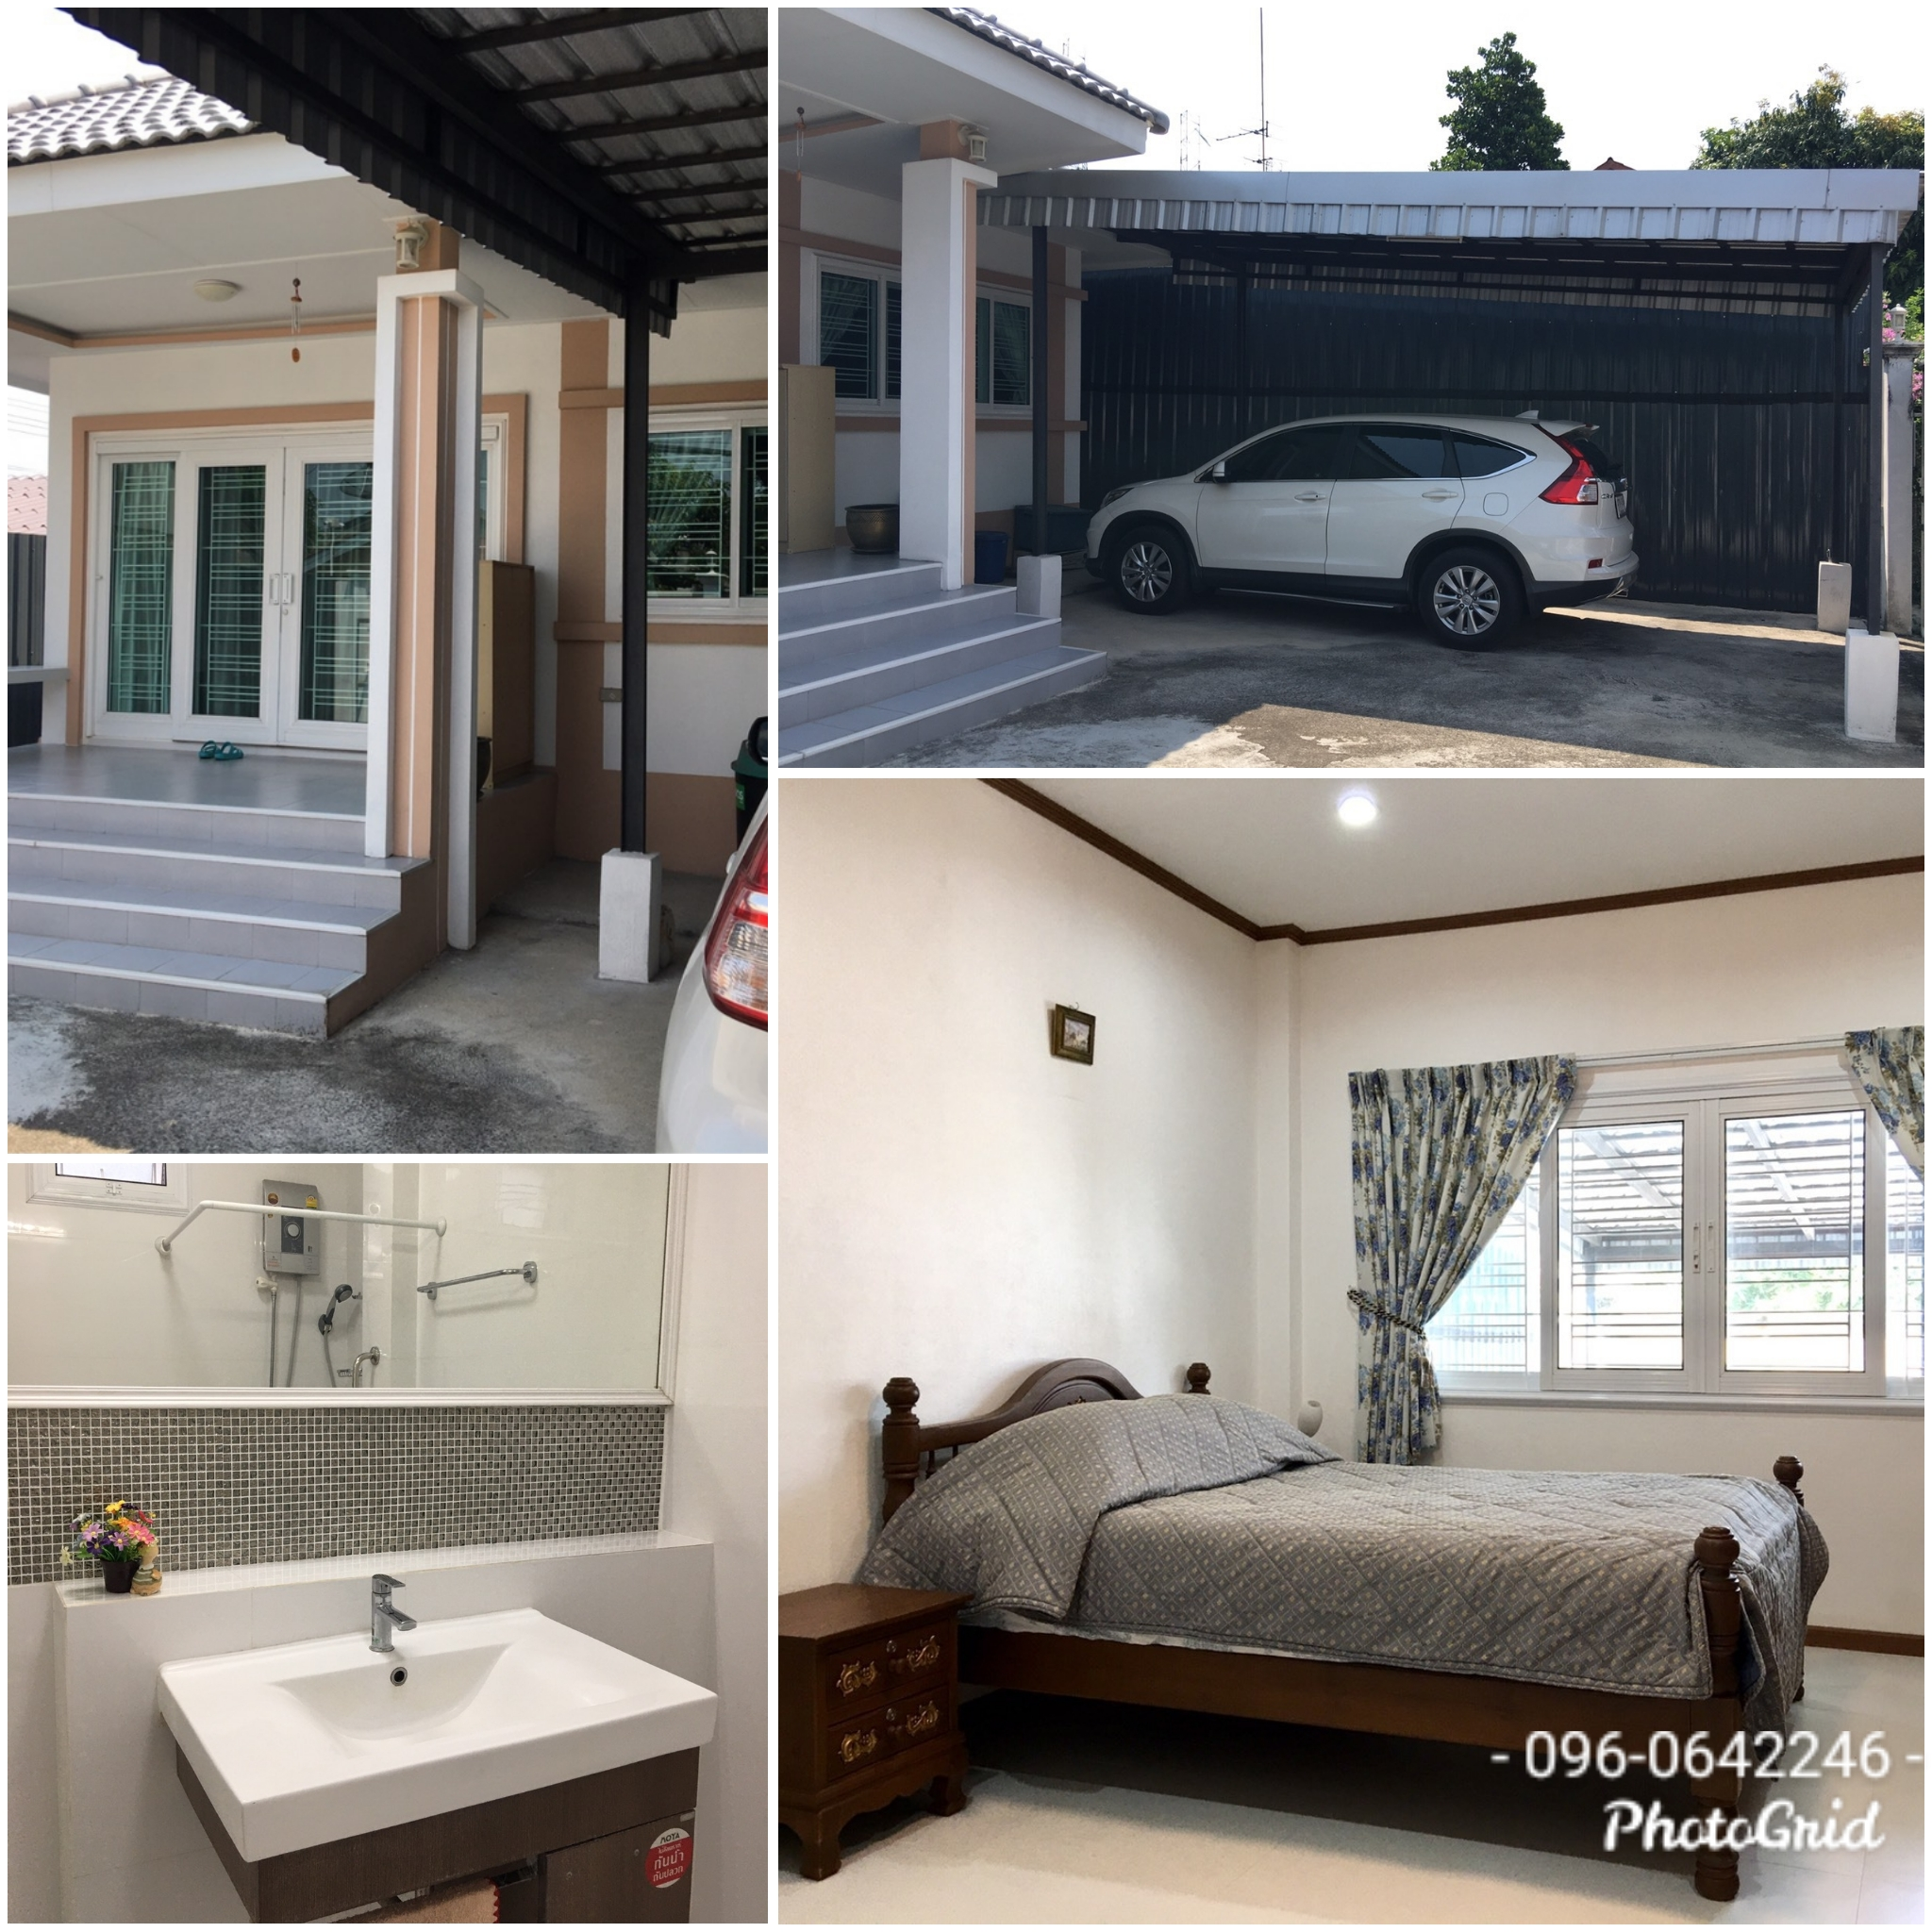 For SaleHouseRamkhamhaeng Nida, Seri Thai : House for sale # 50 sq. W. M. Sammakorn 1, Ramkhamhaeng Road, Soi 110, Saphan Sung District, Bangkok, near Prep School